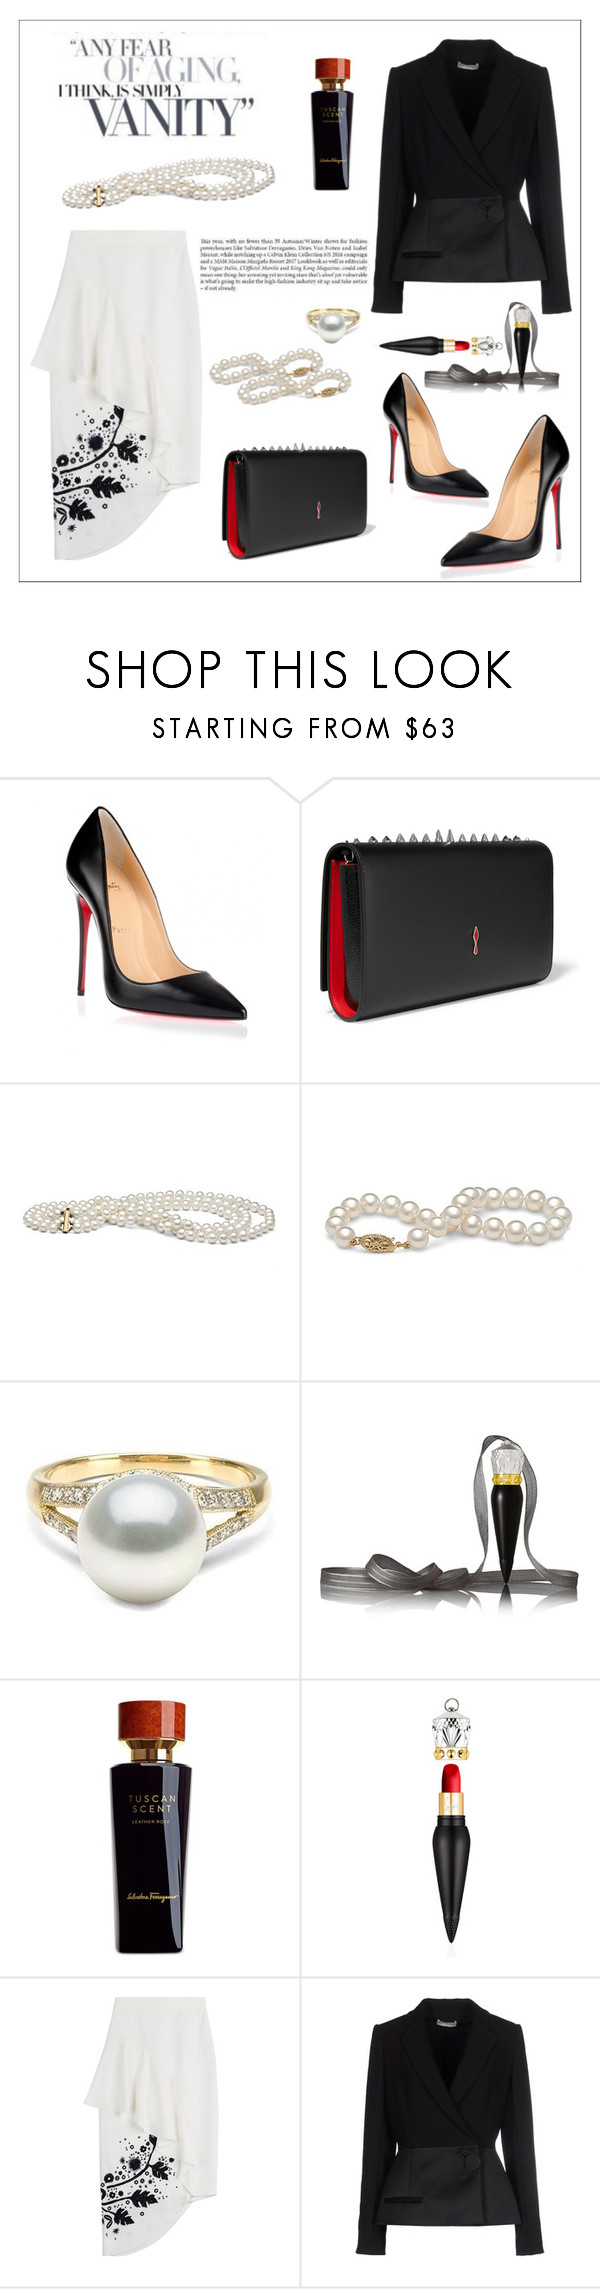 """ANY FEAR OF AGING, I THINK, IS SIMPLY VANITY!!!"" by kskafida ❤ liked on Polyvore featuring Christian Louboutin, Salvatore Ferragamo, Peter Pilotto and Balenciaga"